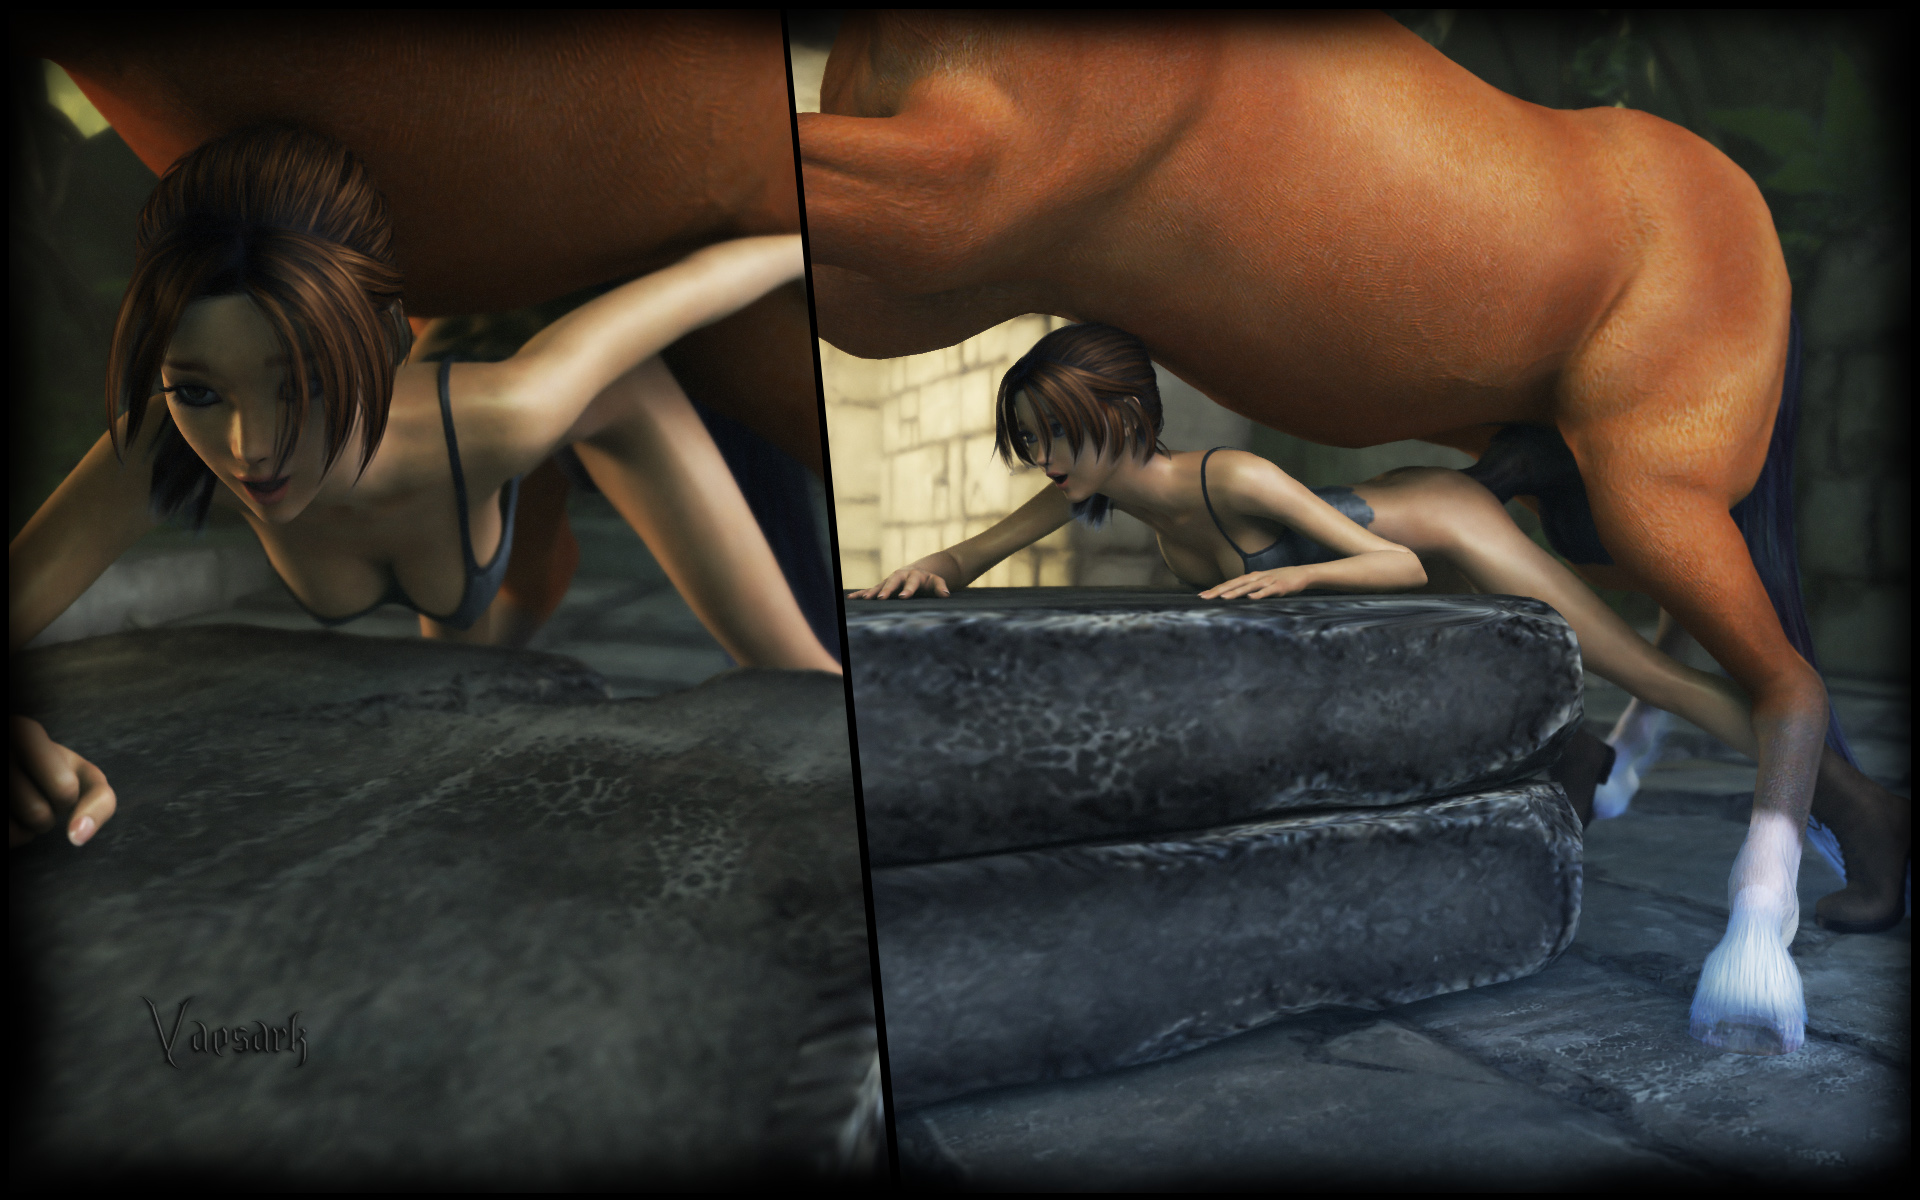 lara croft horse sex